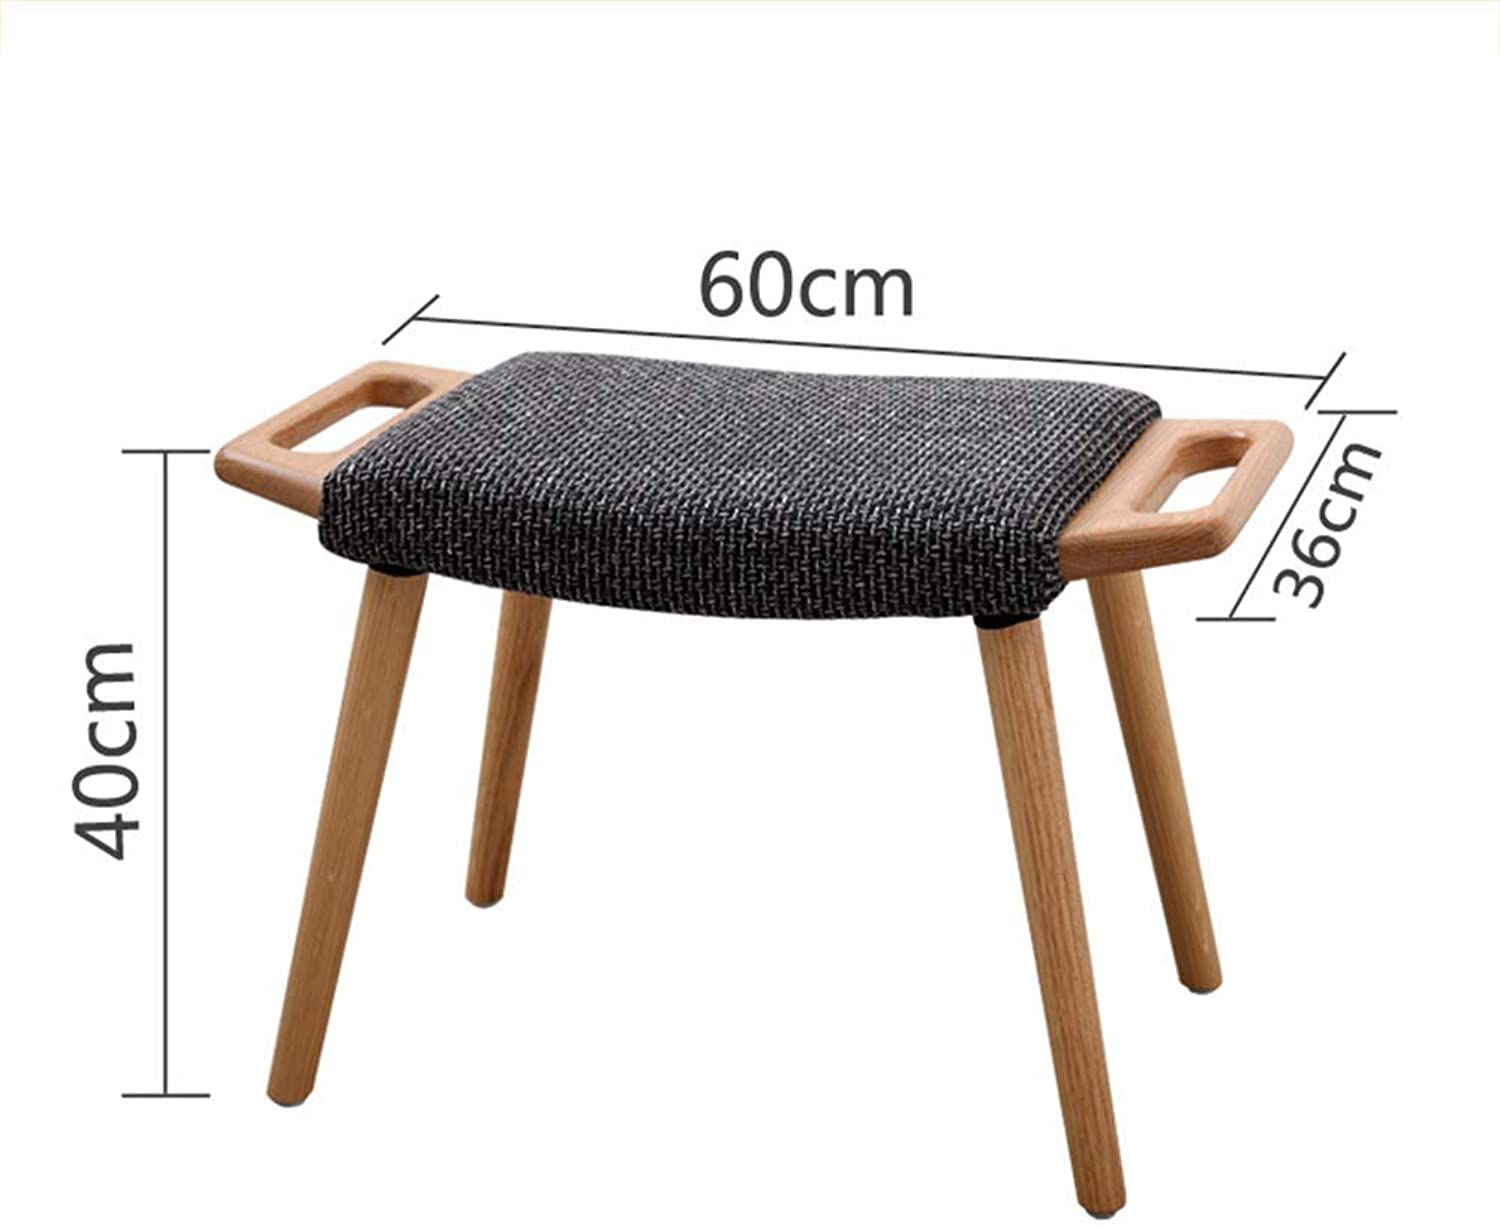 GBXX Fashion Creative Small Furniture Anti-Slip Stool Footstool Bamboo Stool Work Stool Shower Stool Solid Wood Fabric Home Simple shoes Bench Multifunction Household Creative,The Logs Are Light Gre